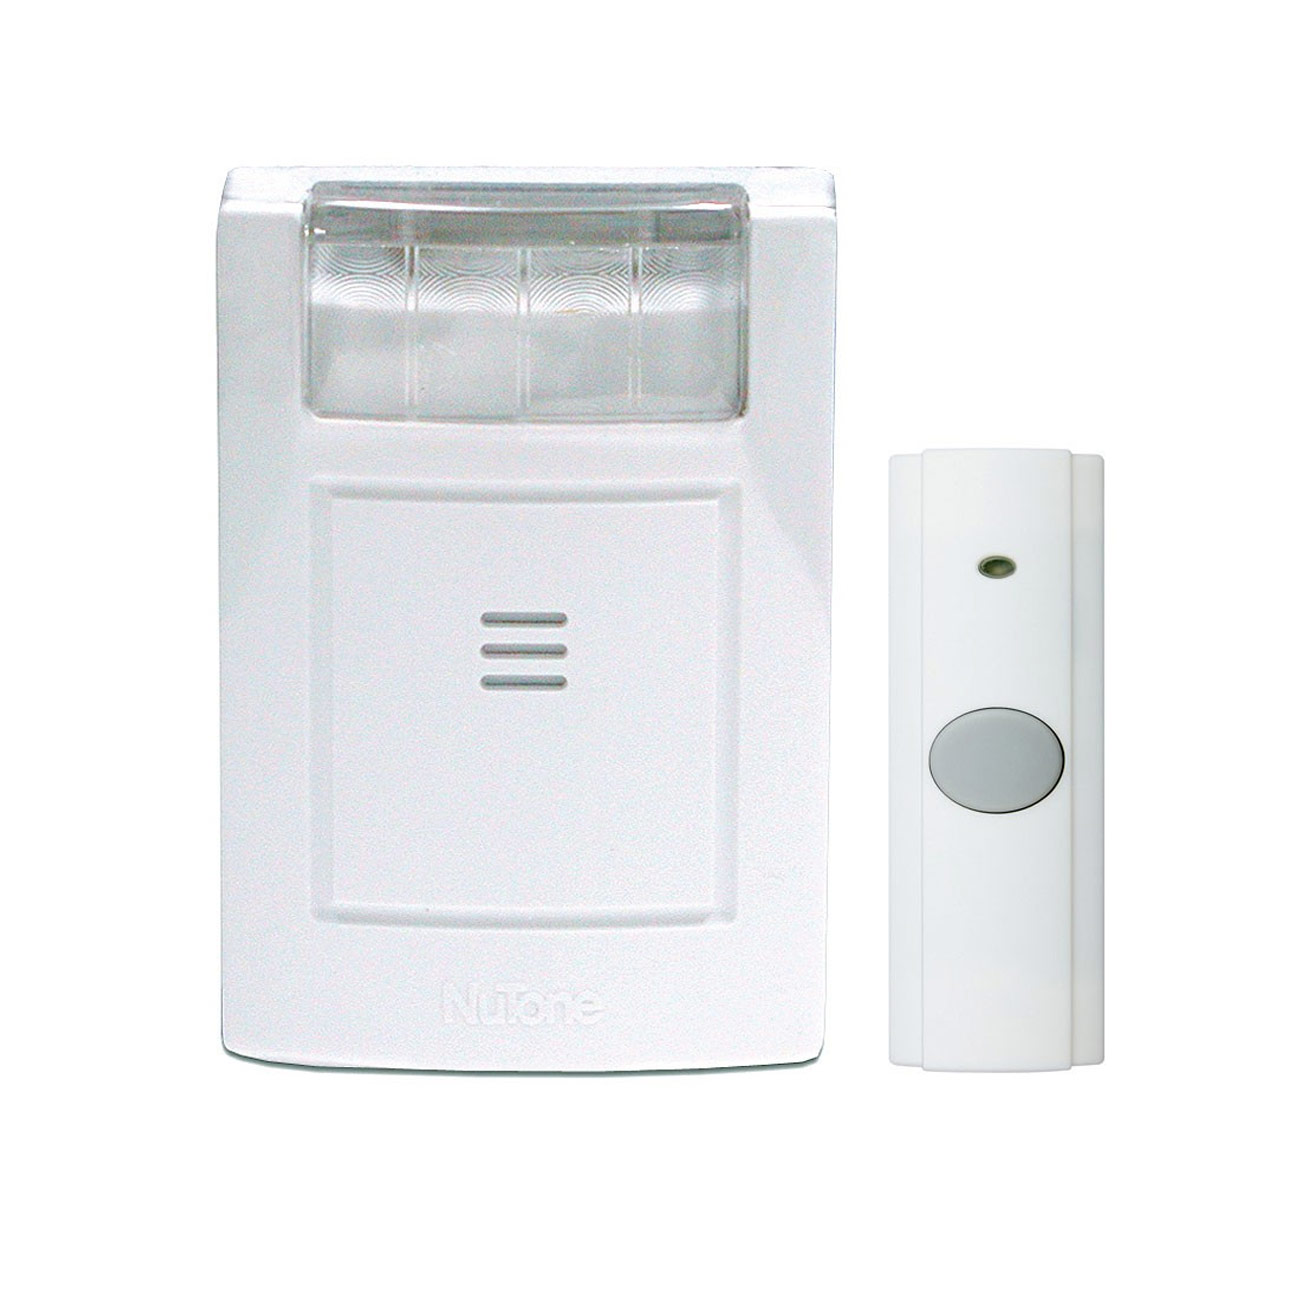 Nutone Strobe Door Chime Price: $64.70